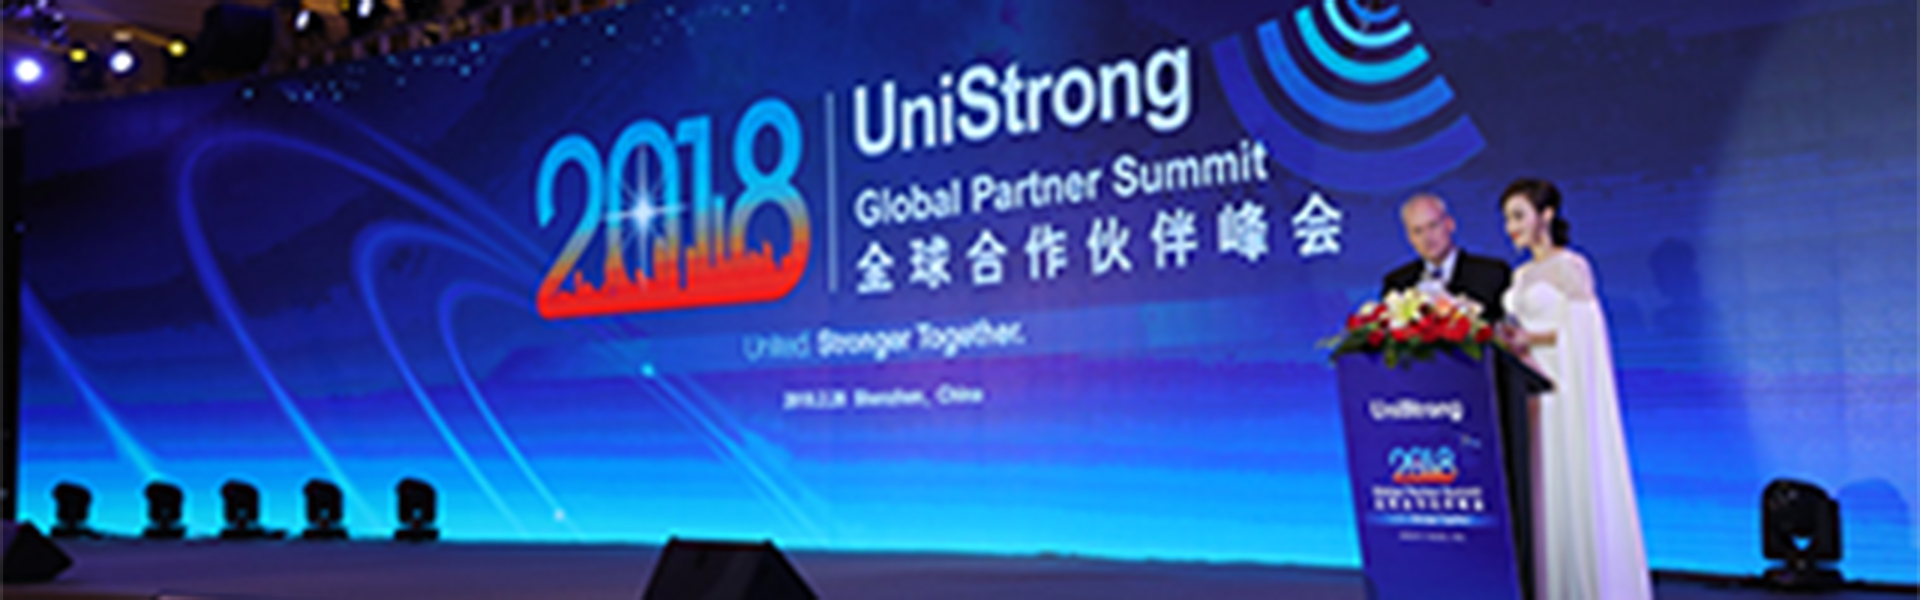 2018 UniStrong Global Partner Summit: United, Stronger Together